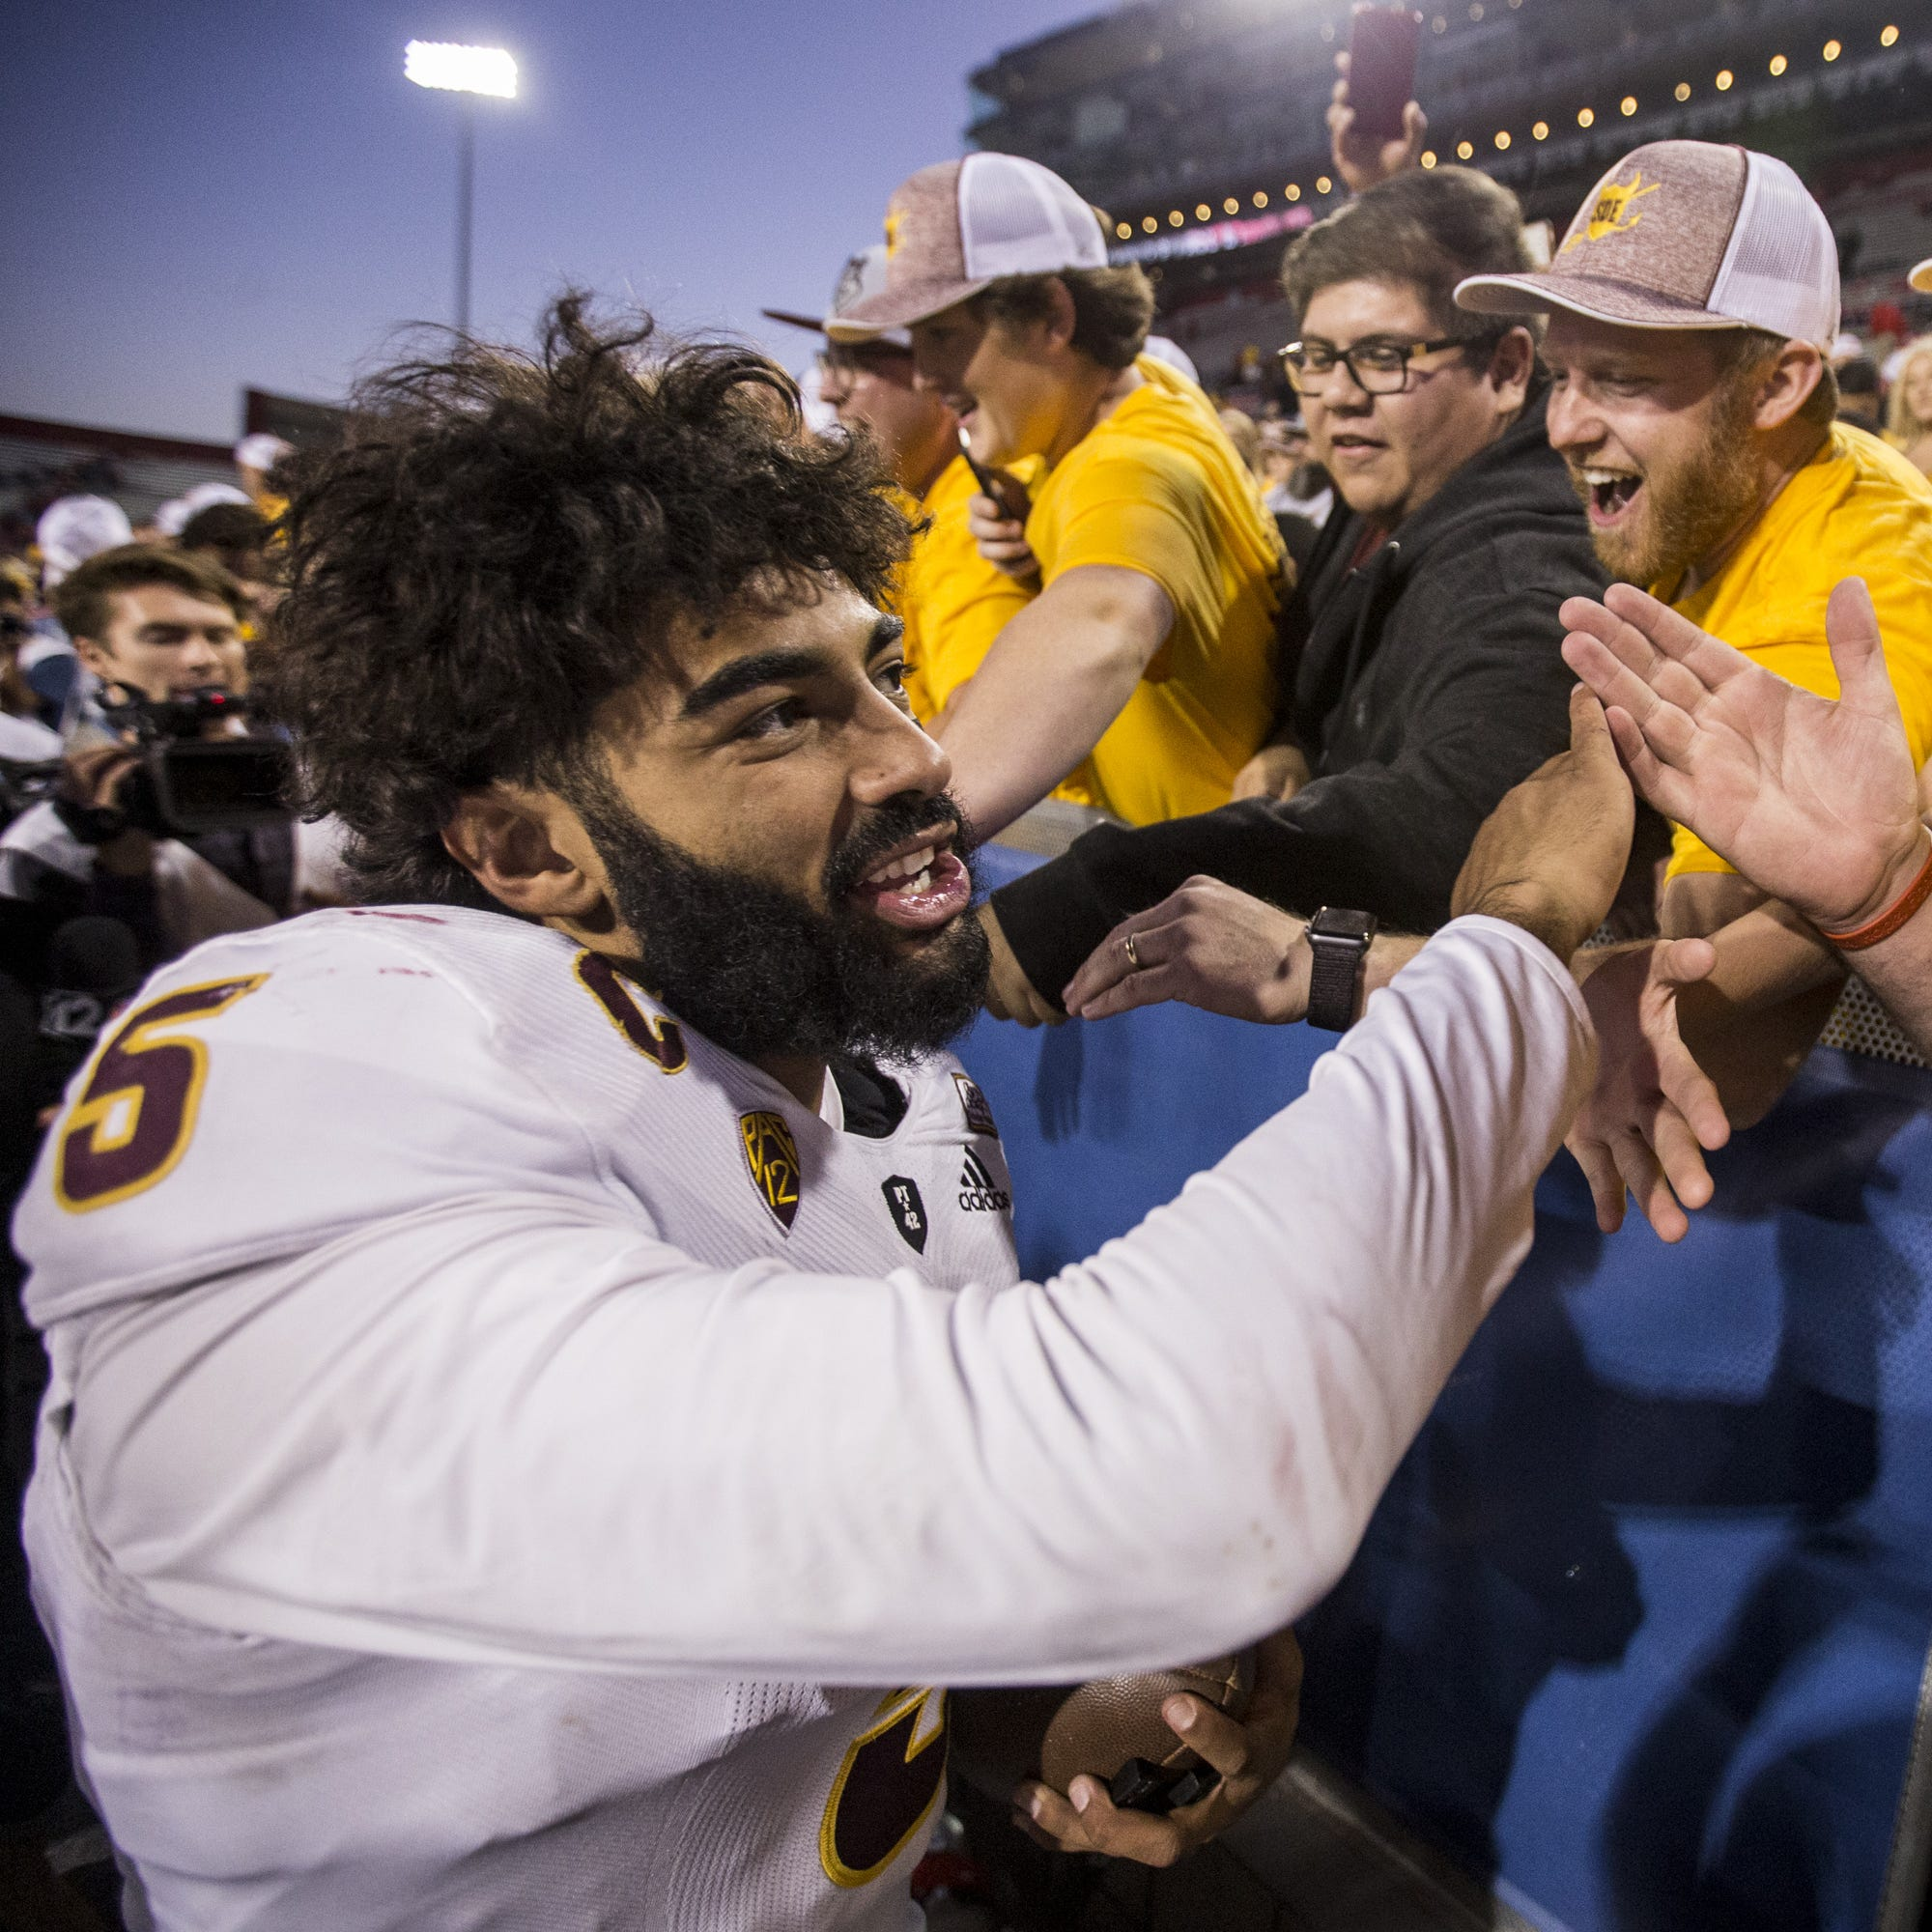 The Las Vegas Bowl will end college career of QB Manny Wilkins